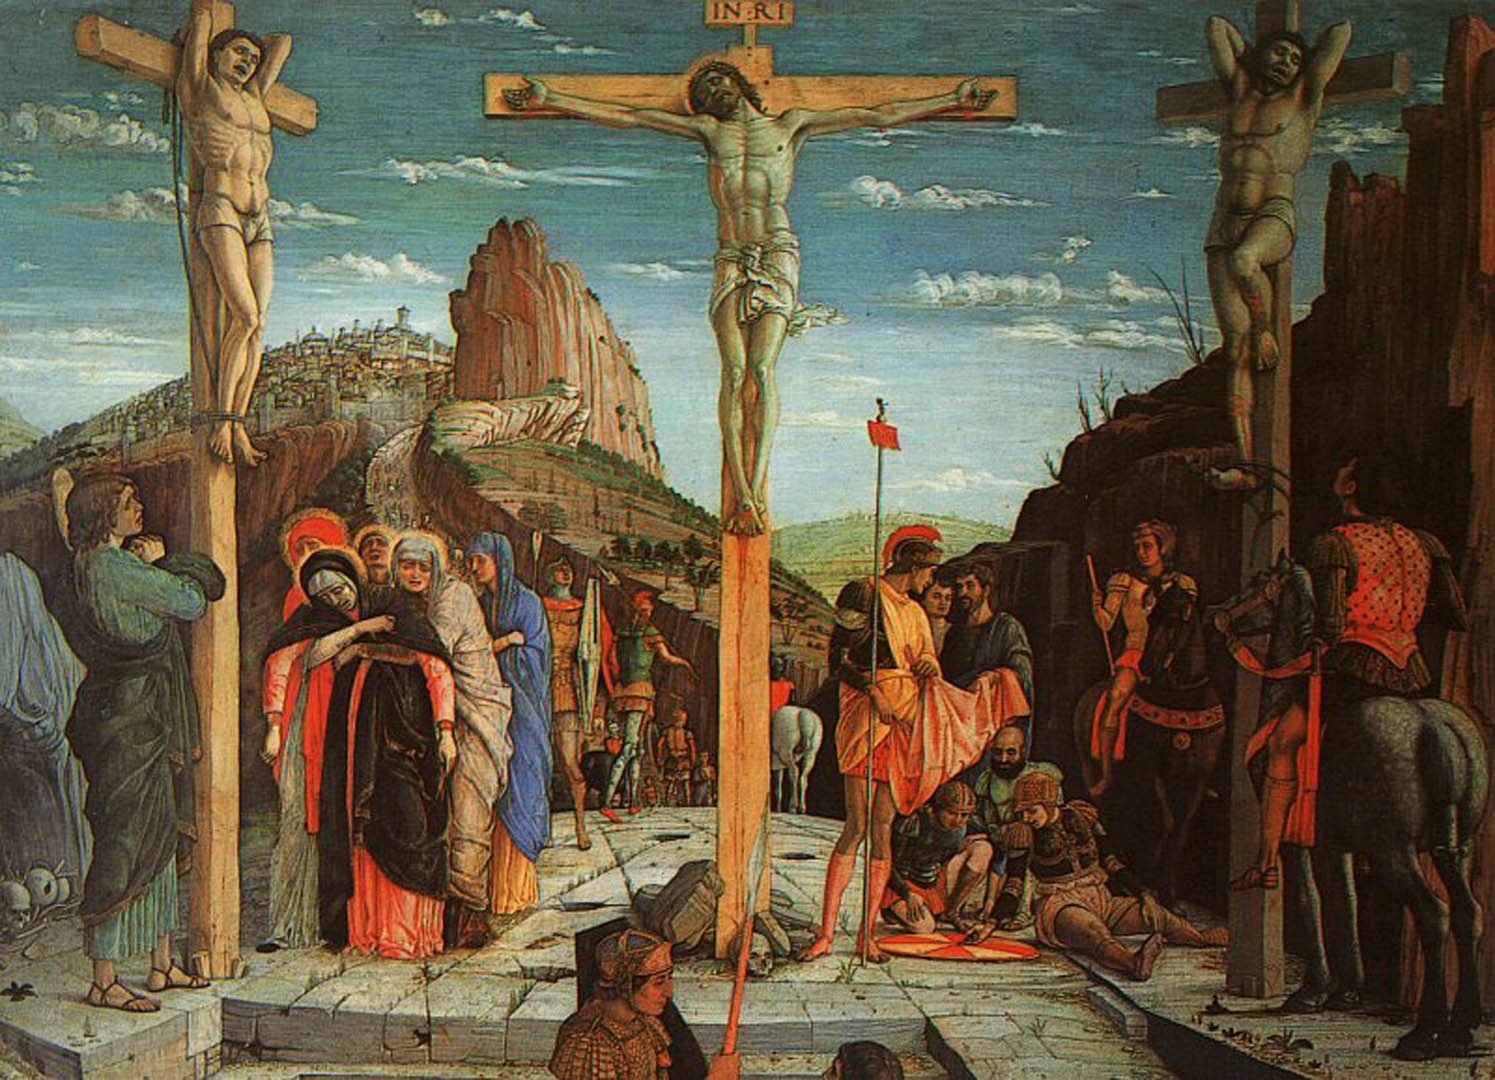 a representation of the crucifixion of jesus christ in the paintings the crucifixion by joos van cle 0892362197pdf - ebook  george goldner has been put in charge of the museum's paintings as well as drawings  antoine coypel the crucifixion (no 54.